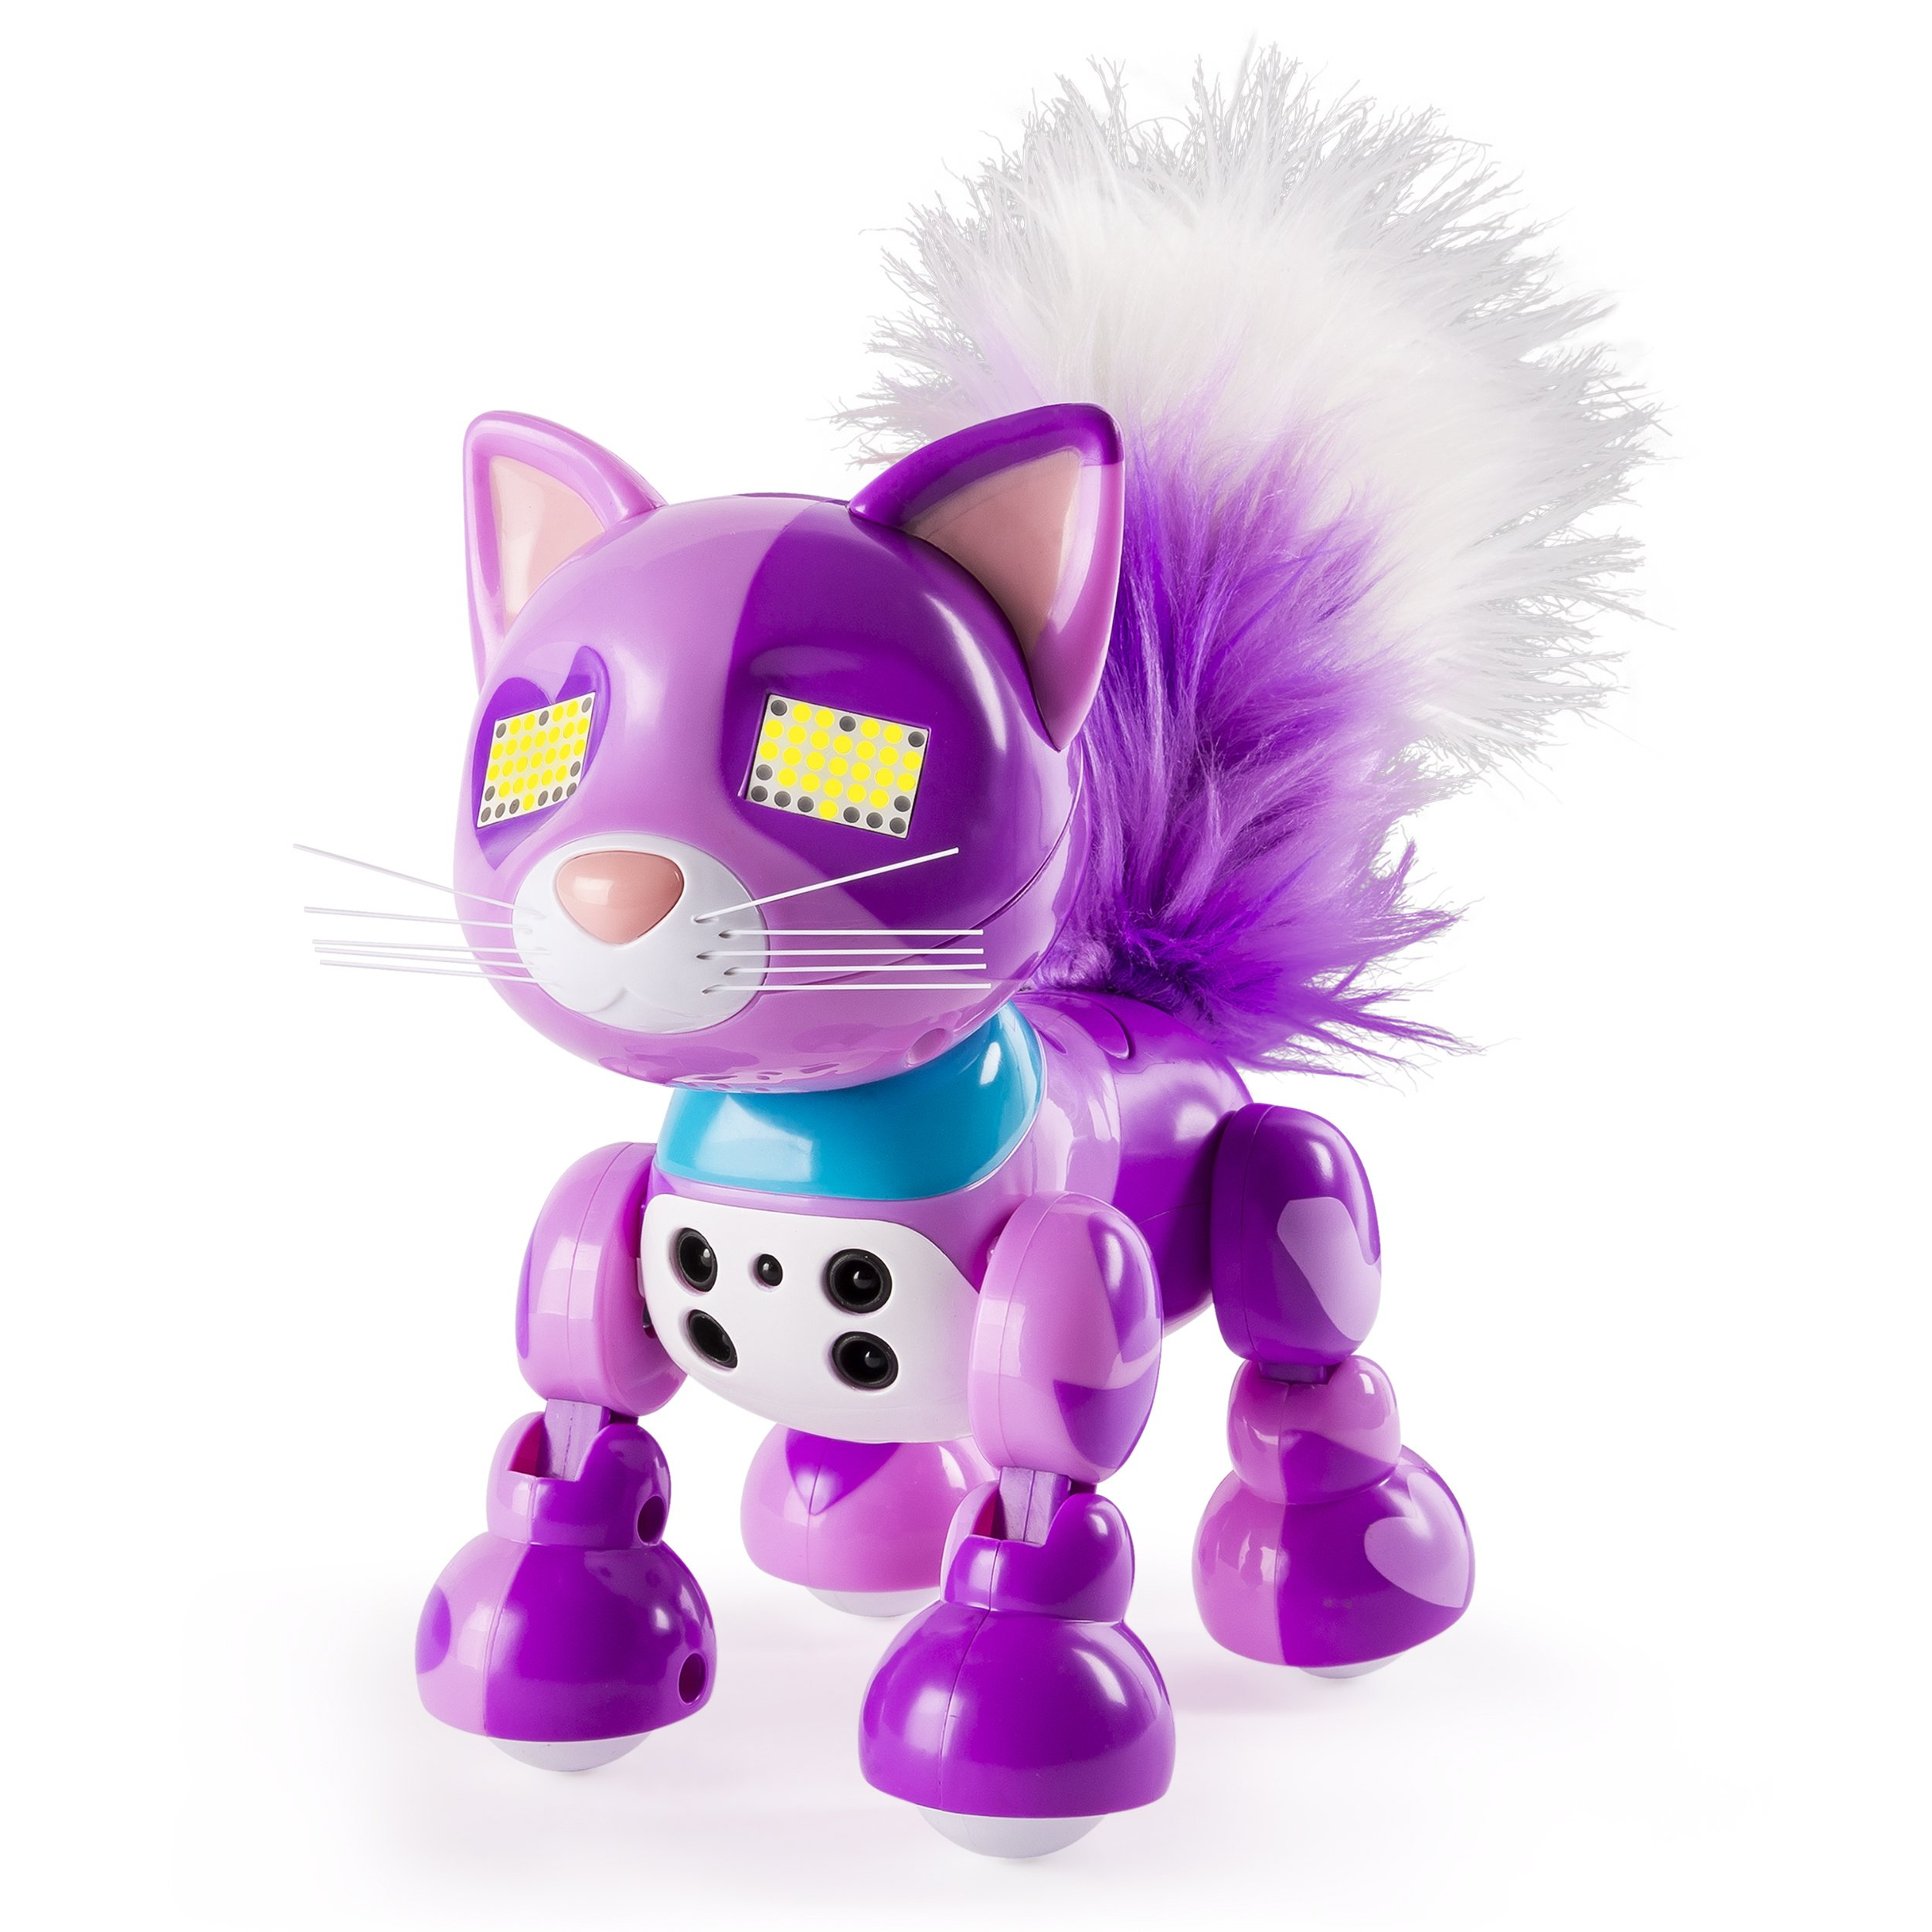 Zoomer Meowzies, Viola, Interactive Kitten with Lights, Sounds and Sensors, by Spin Master by Zoomer (Image #5)